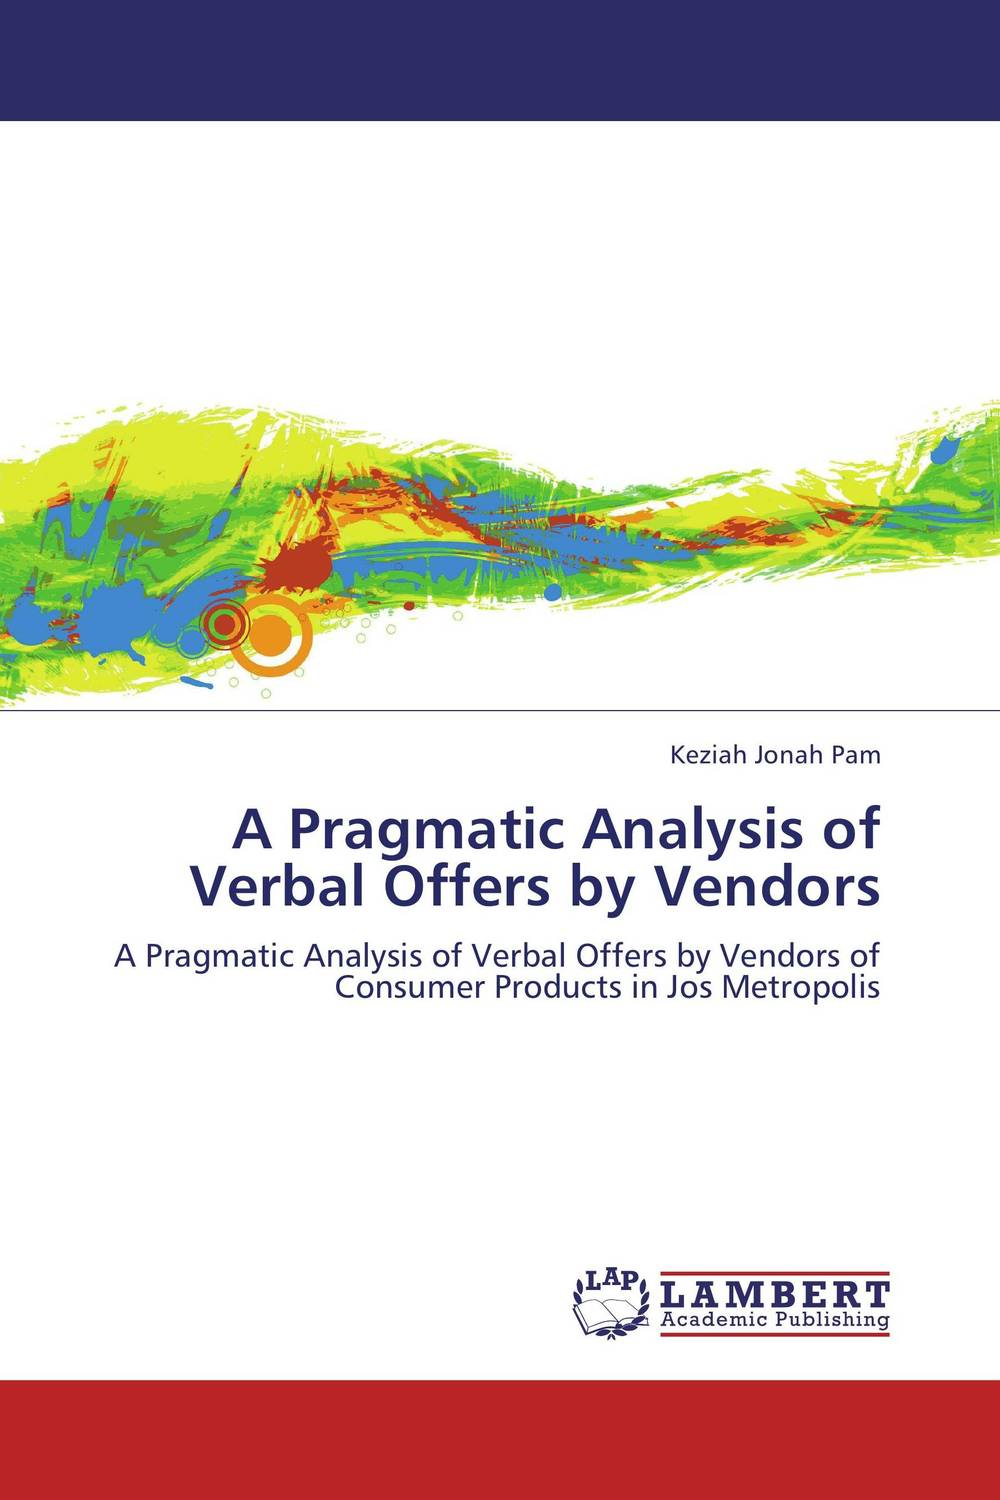 A Pragmatic Analysis of Verbal Offers by Vendors michel foucault introduction to kant s anthropology from a pragmatic point of view translated by roberto nigro